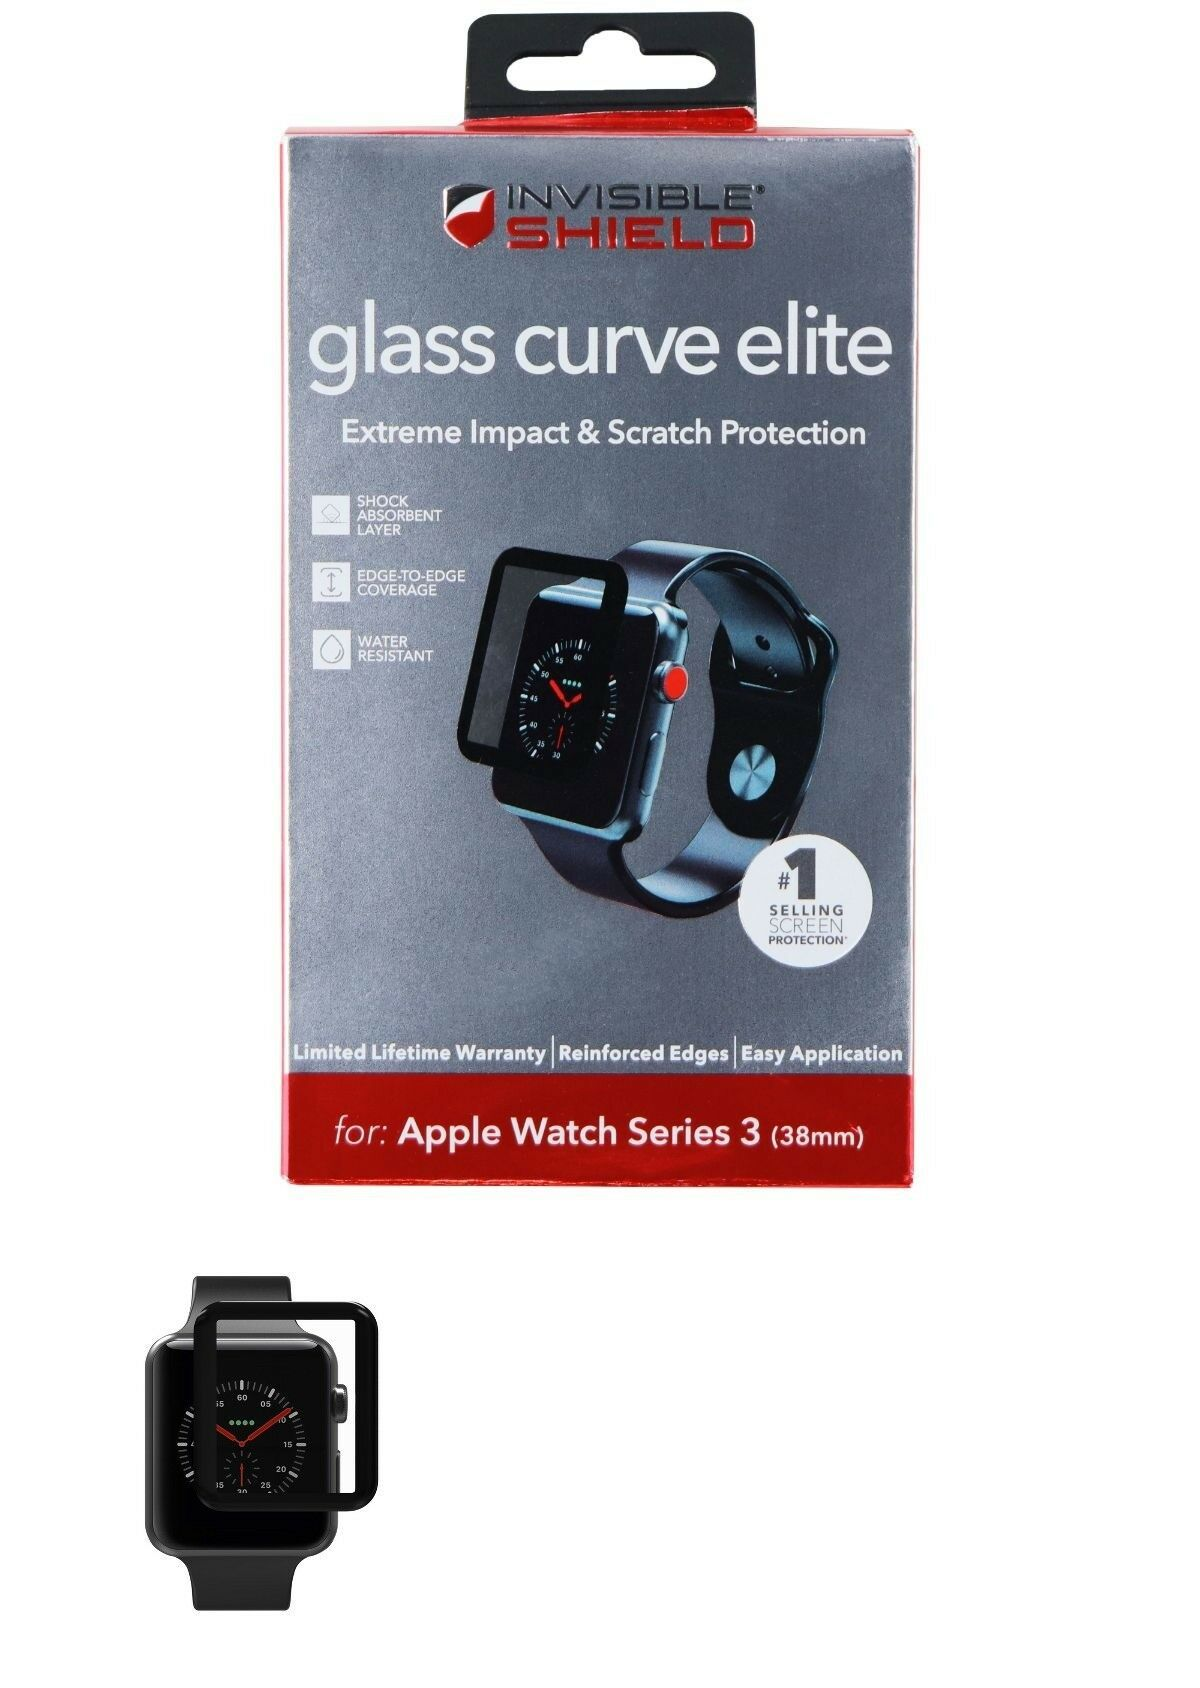 Screen Protectors 182066 Zagg Glass Curve Elite Screen Protector For Apple Watch Series 3 38mm B Apple Watch Series 3 Apple Watch Series Apple Watch Case